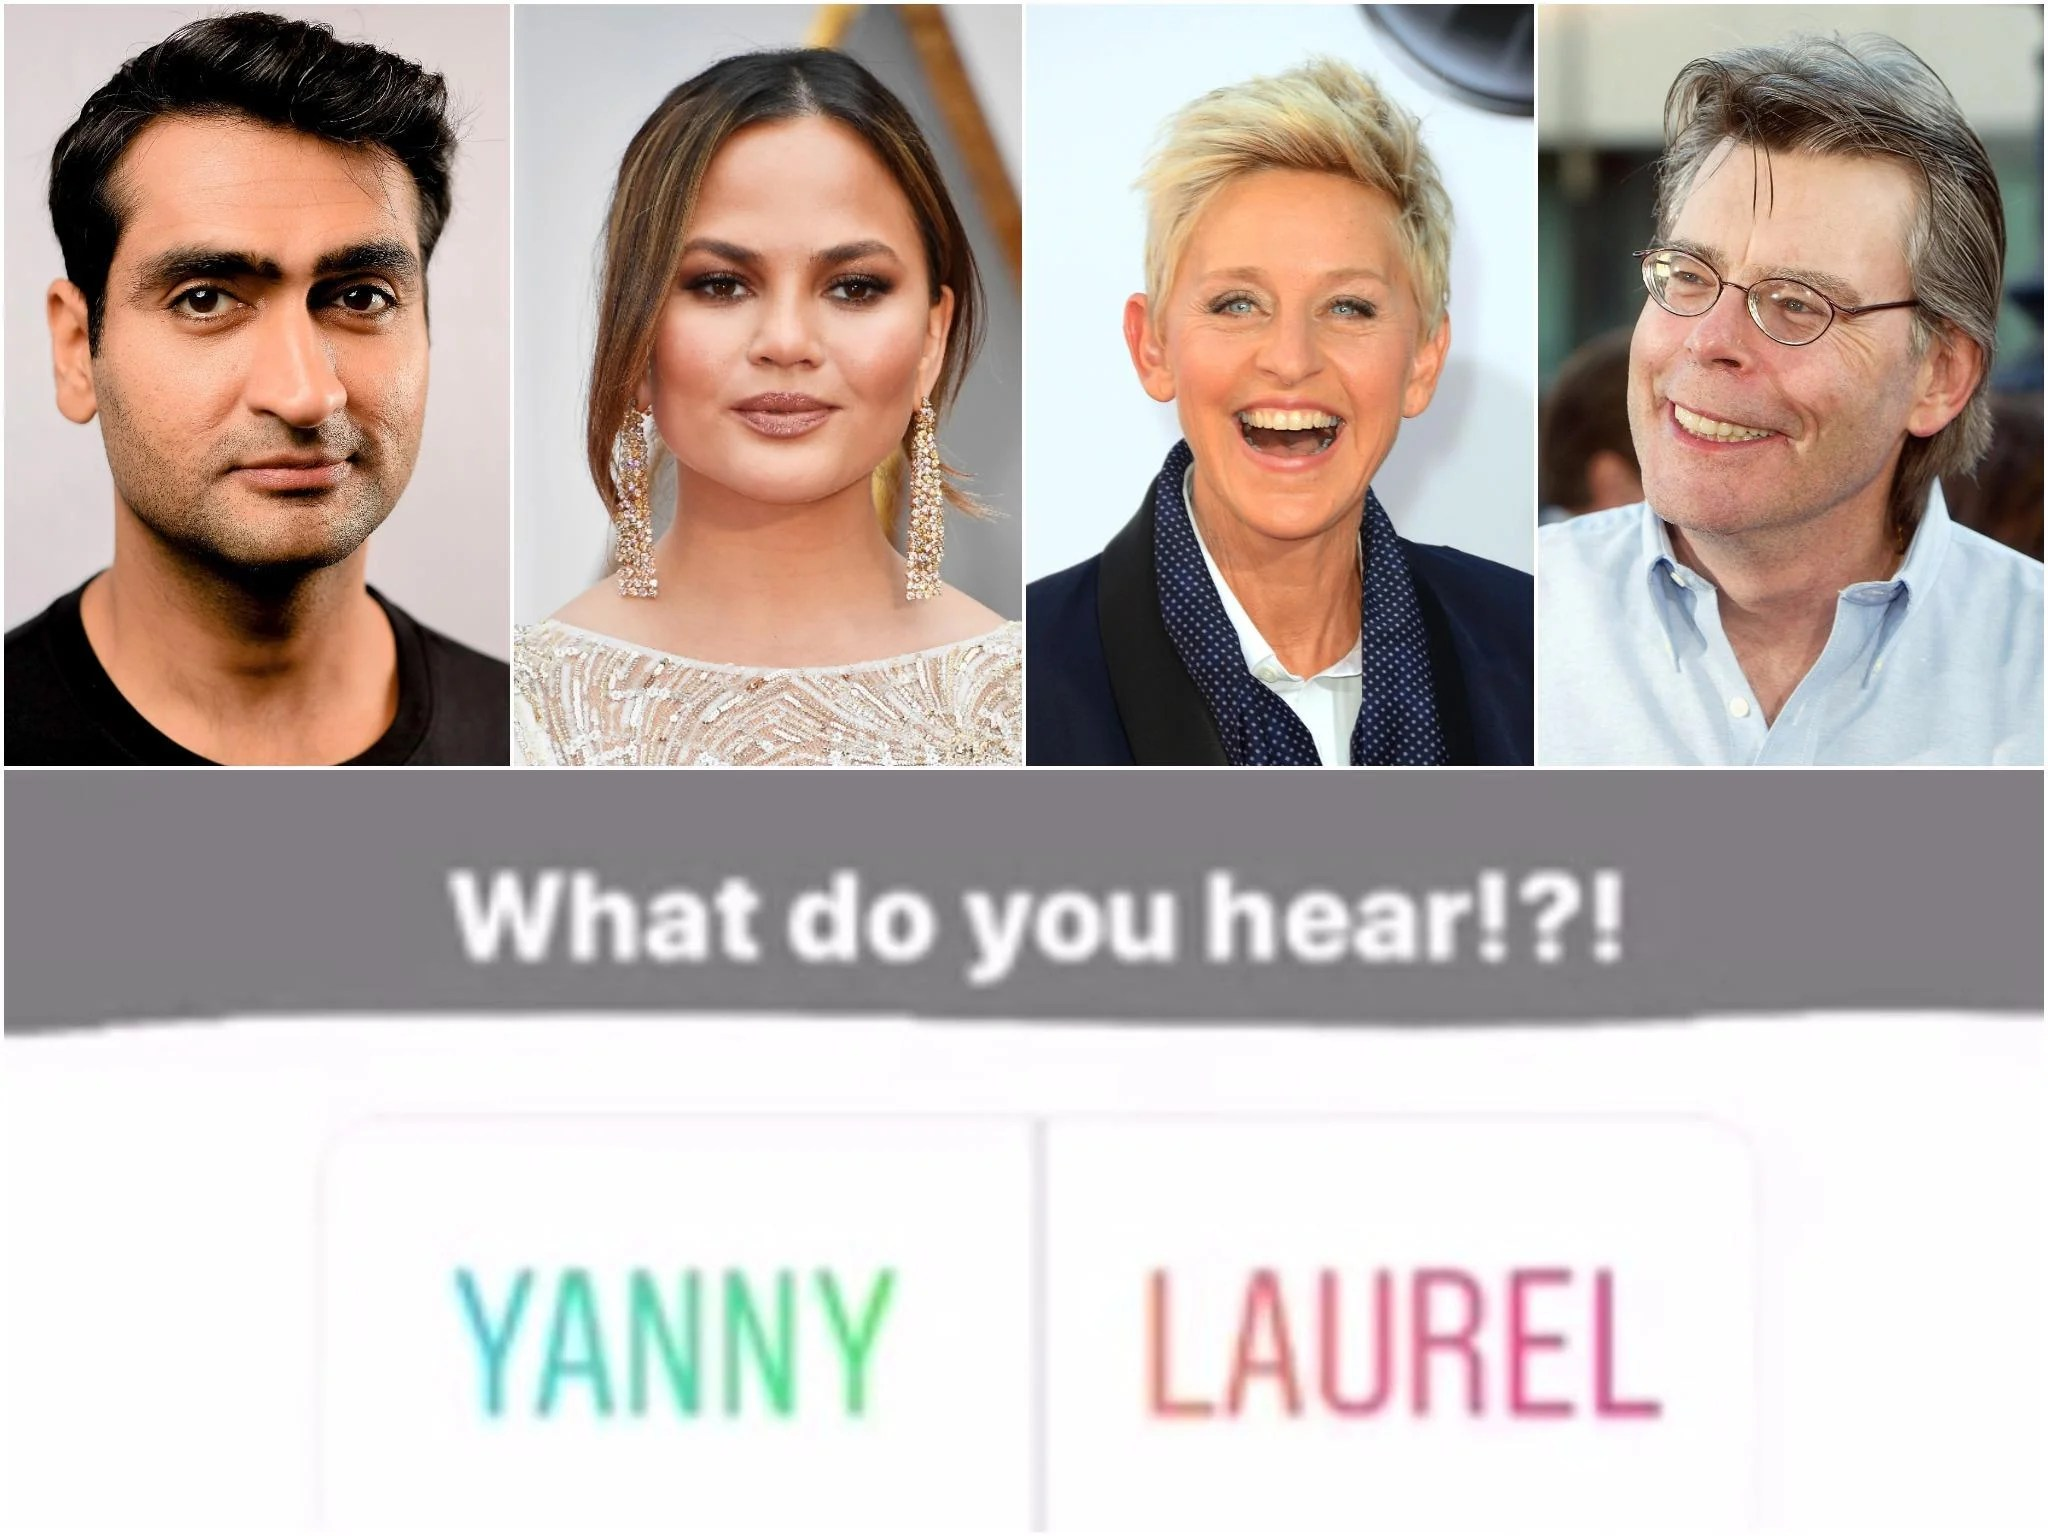 Yanny or Laurel  Celebrities including Ellen DeGeneres  Christine     Yanny or Laurel  Celebrities including Ellen DeGeneres  Christine Teigen  and Piers Morgan decide which is right   The Independent